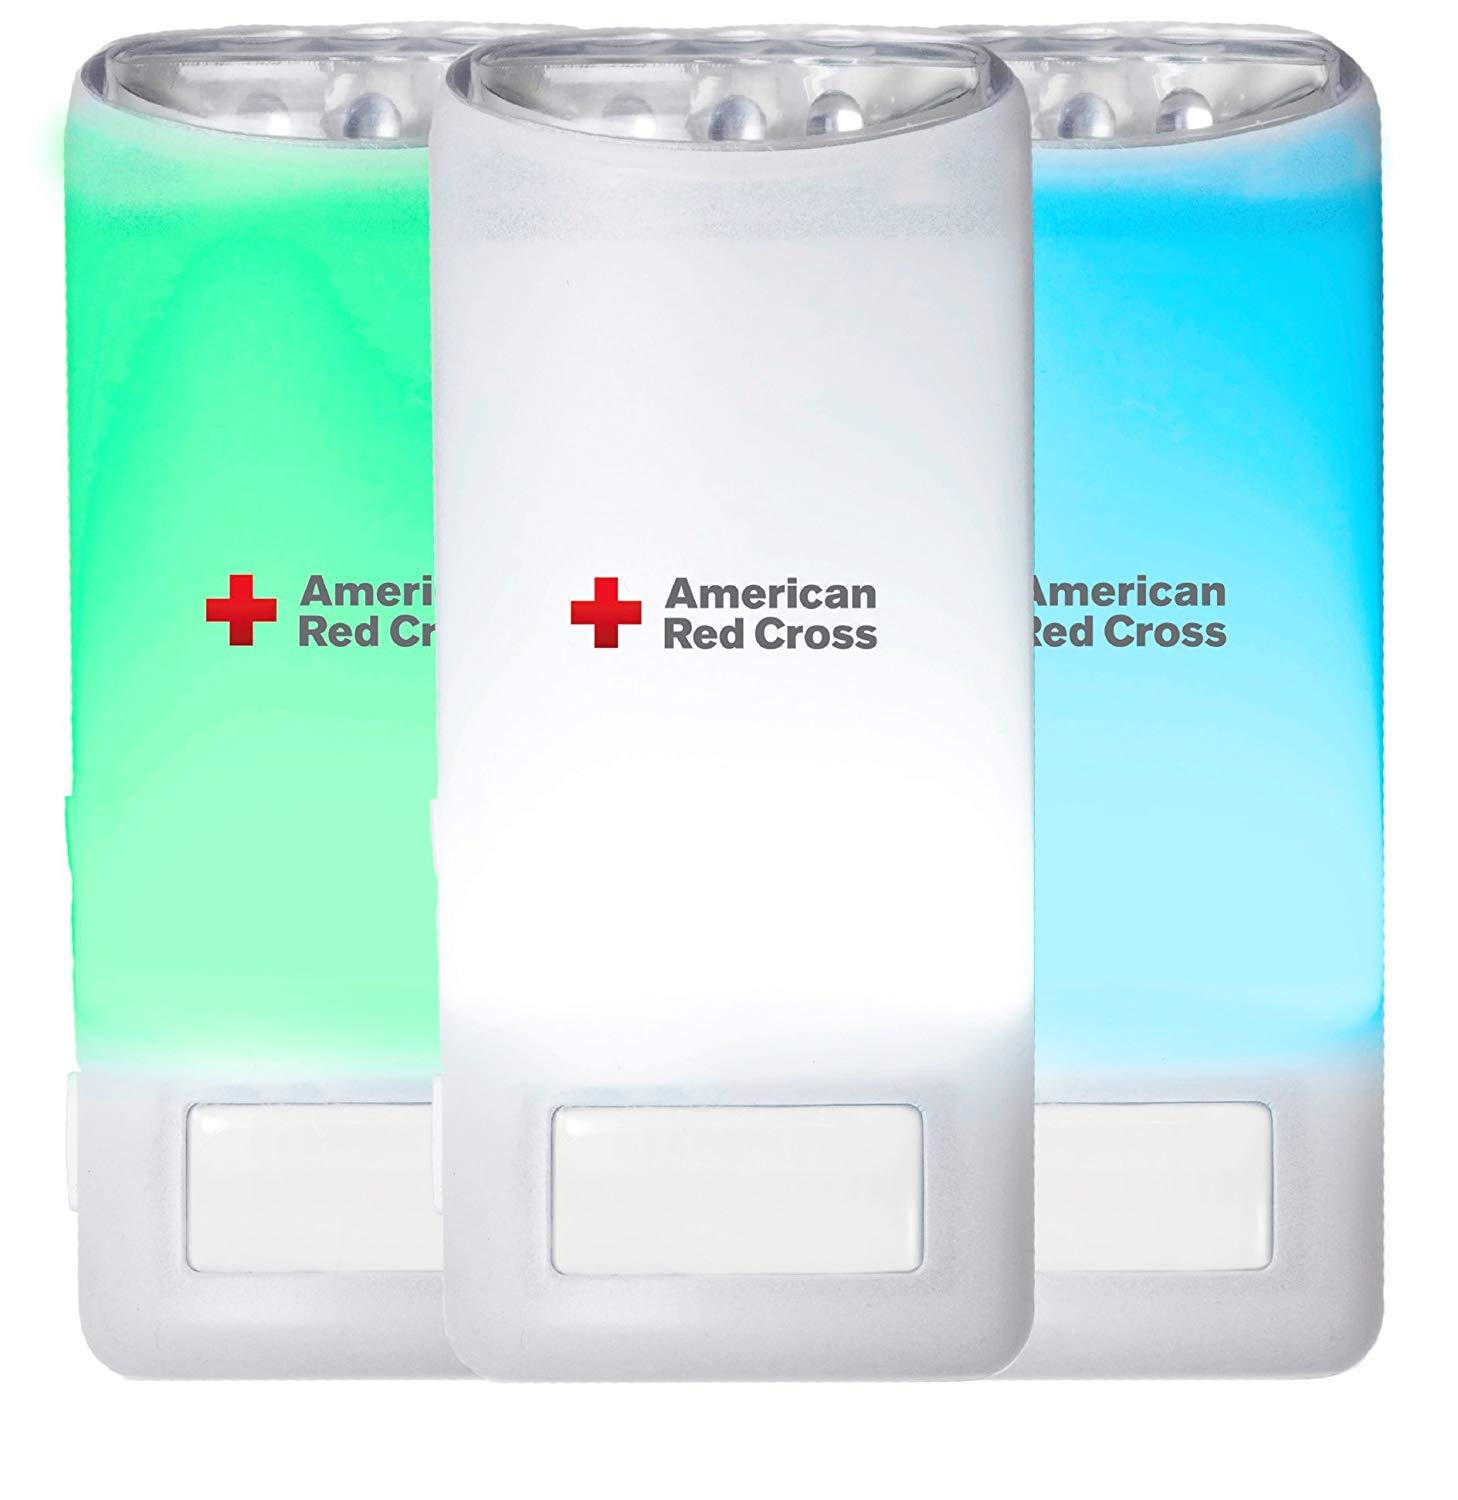 Eton Motion Activated Red Cross Blackout Buddy Color - Double Pack, ARCBB202C-DBL, White